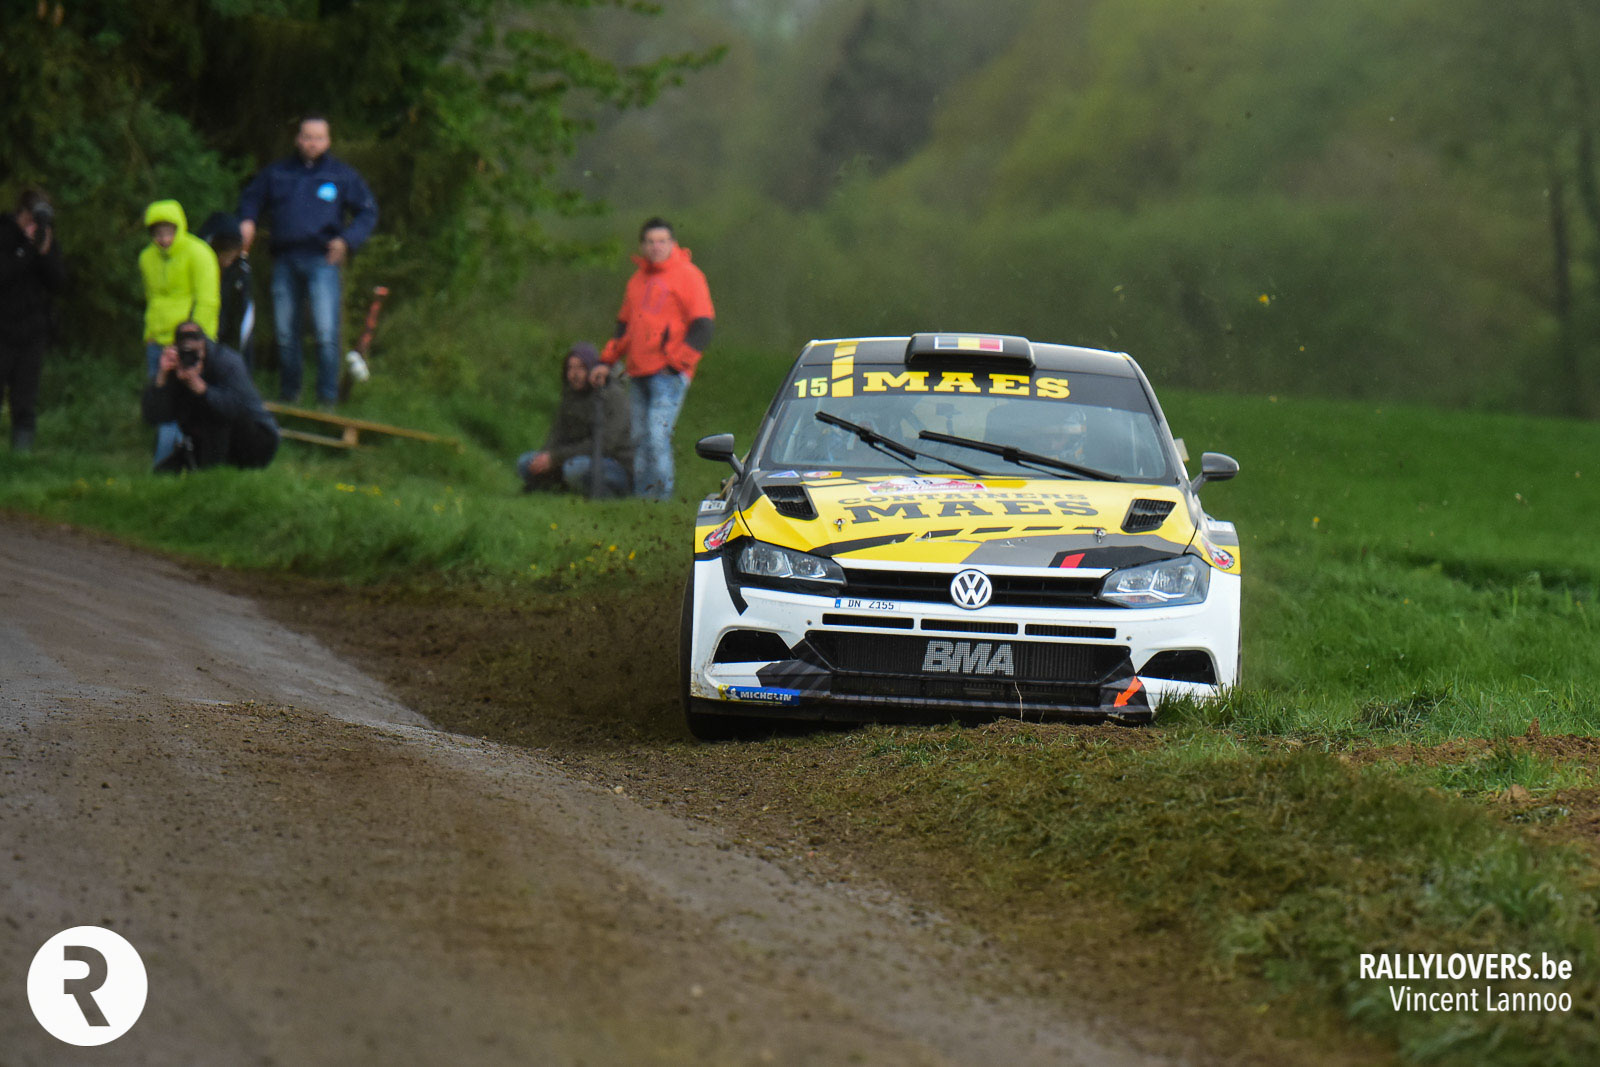 Preview - Sezoensrally - Patrick Snijers